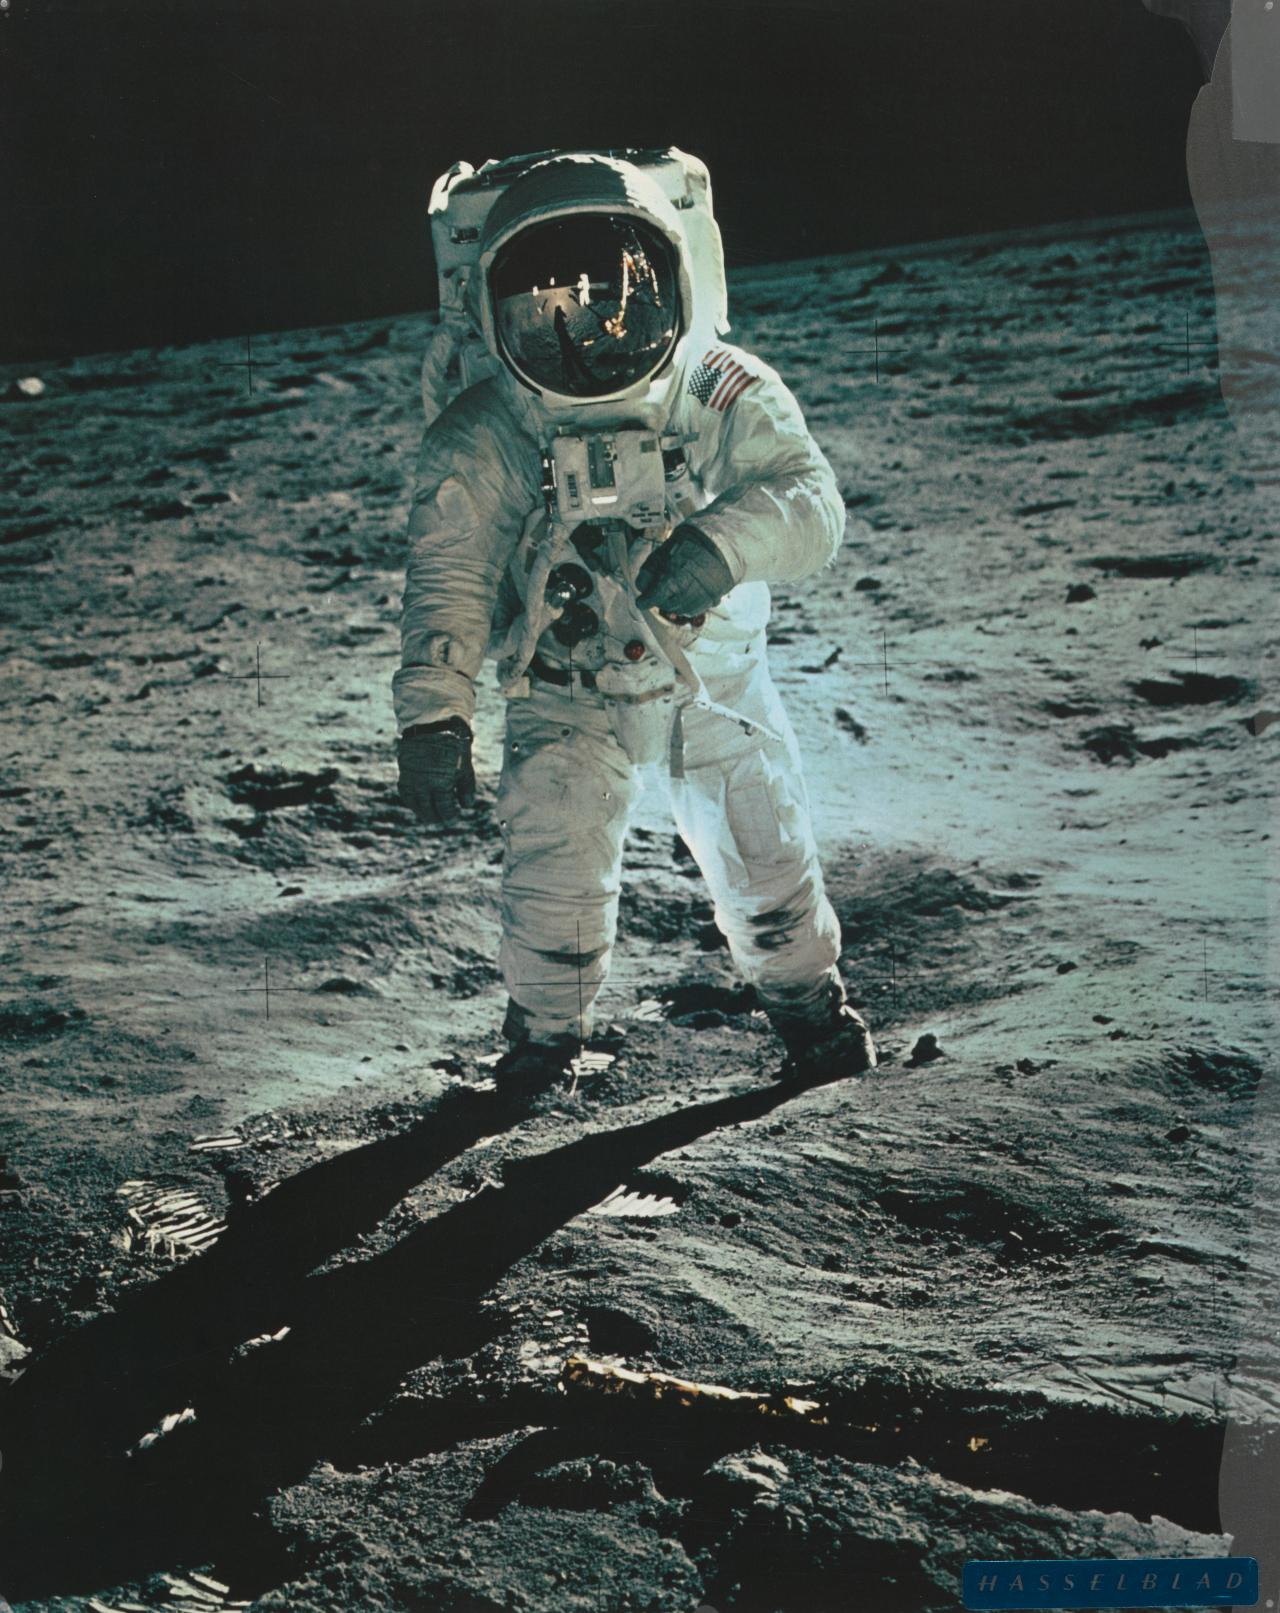 Edwin Aldrin on moon, Armstrong and module reflected in visor, July 1969